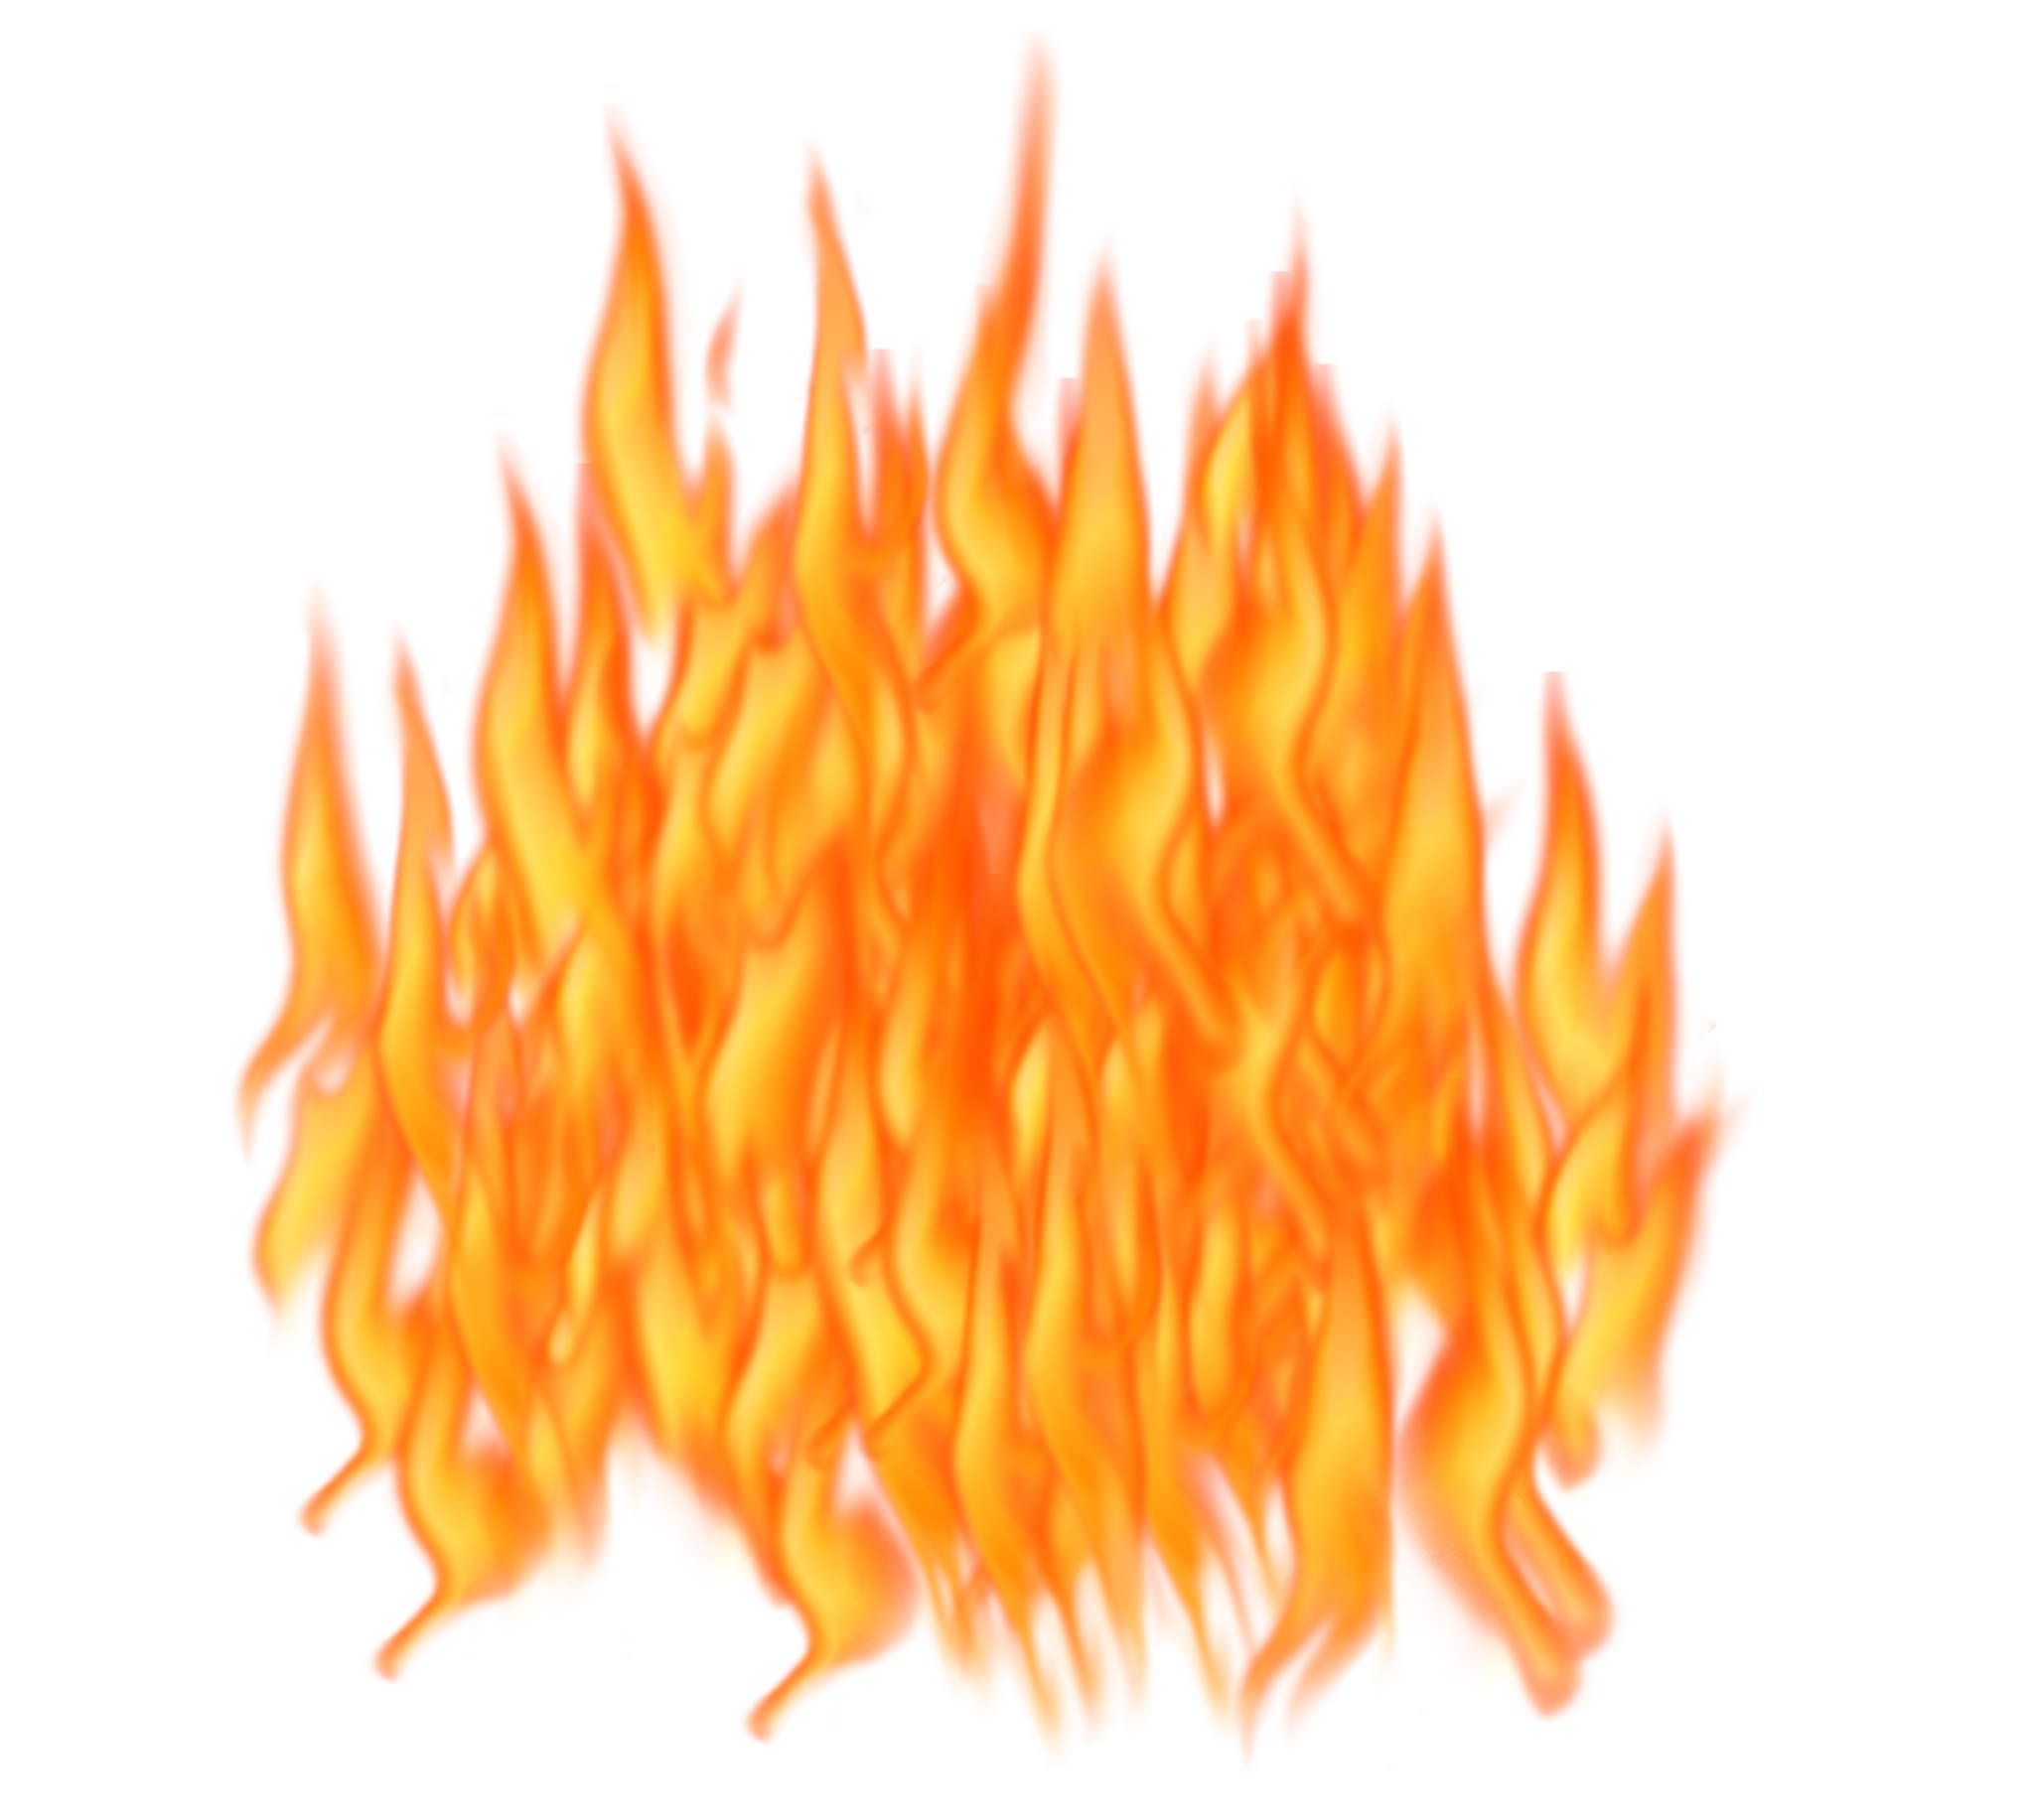 Download PNG Image: Fire Flame PNG Image image #660